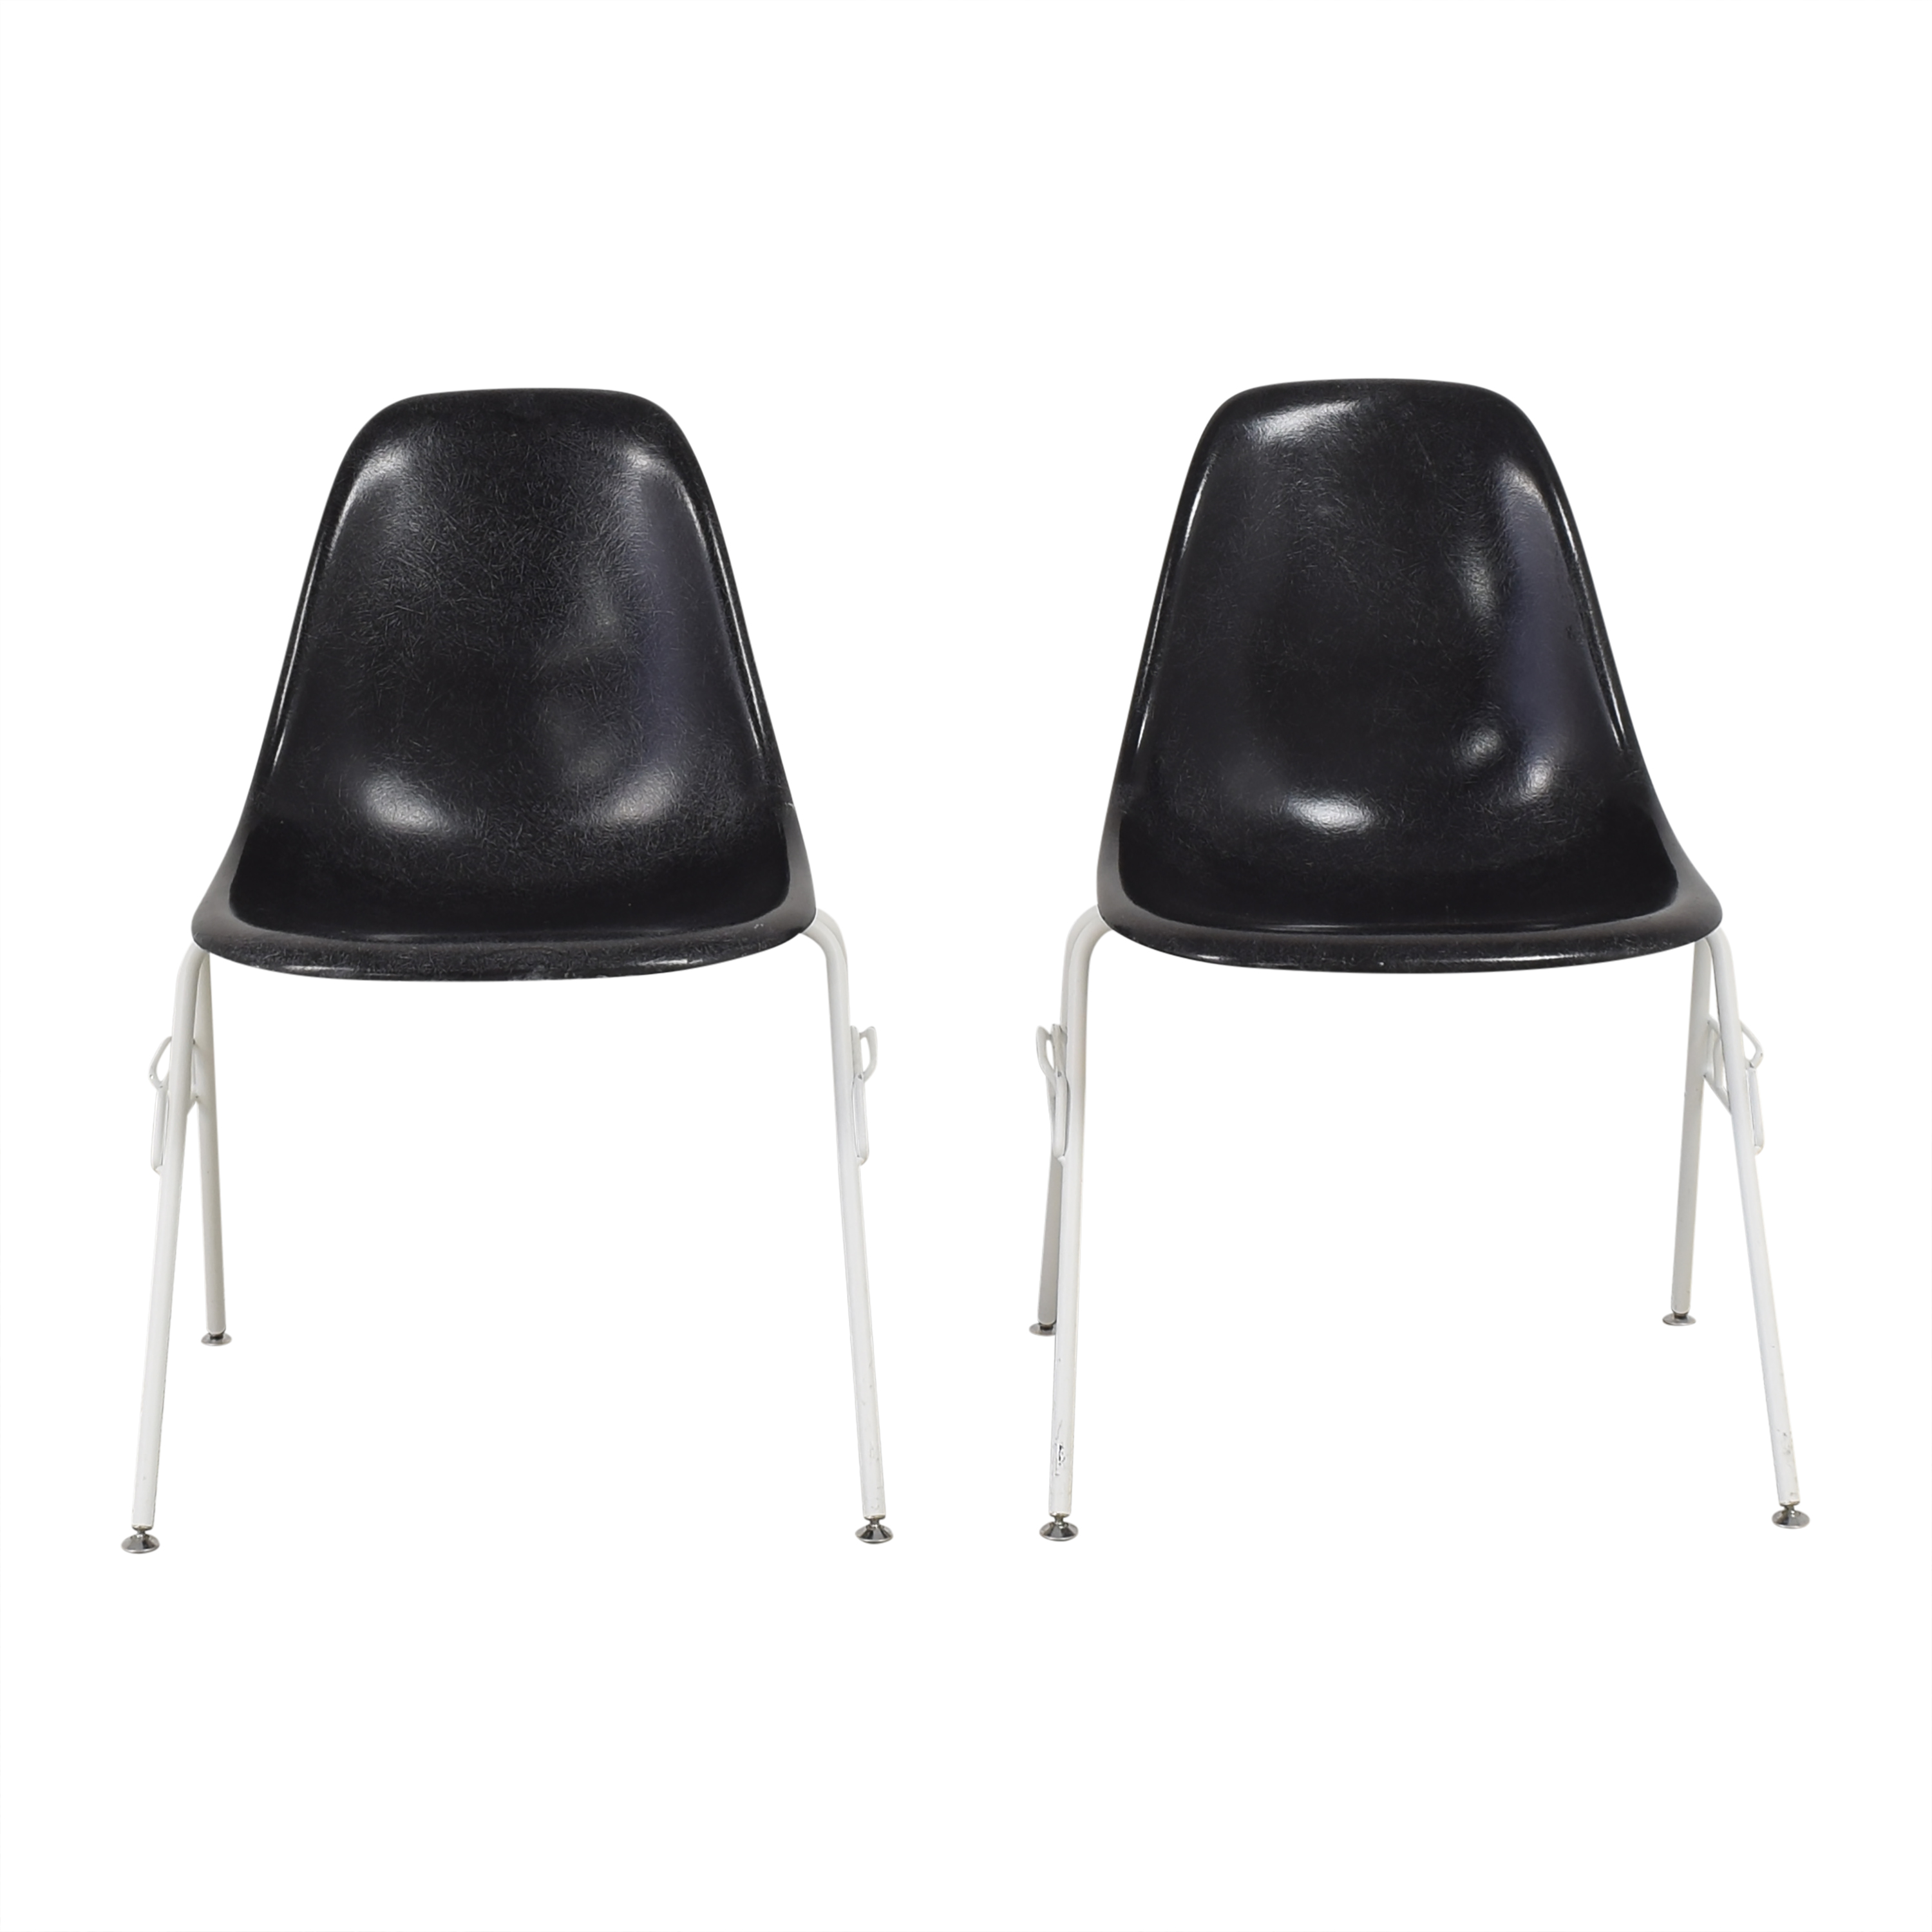 Modernica Case Study Furniture Side Shell Stacking Chairs Modernica